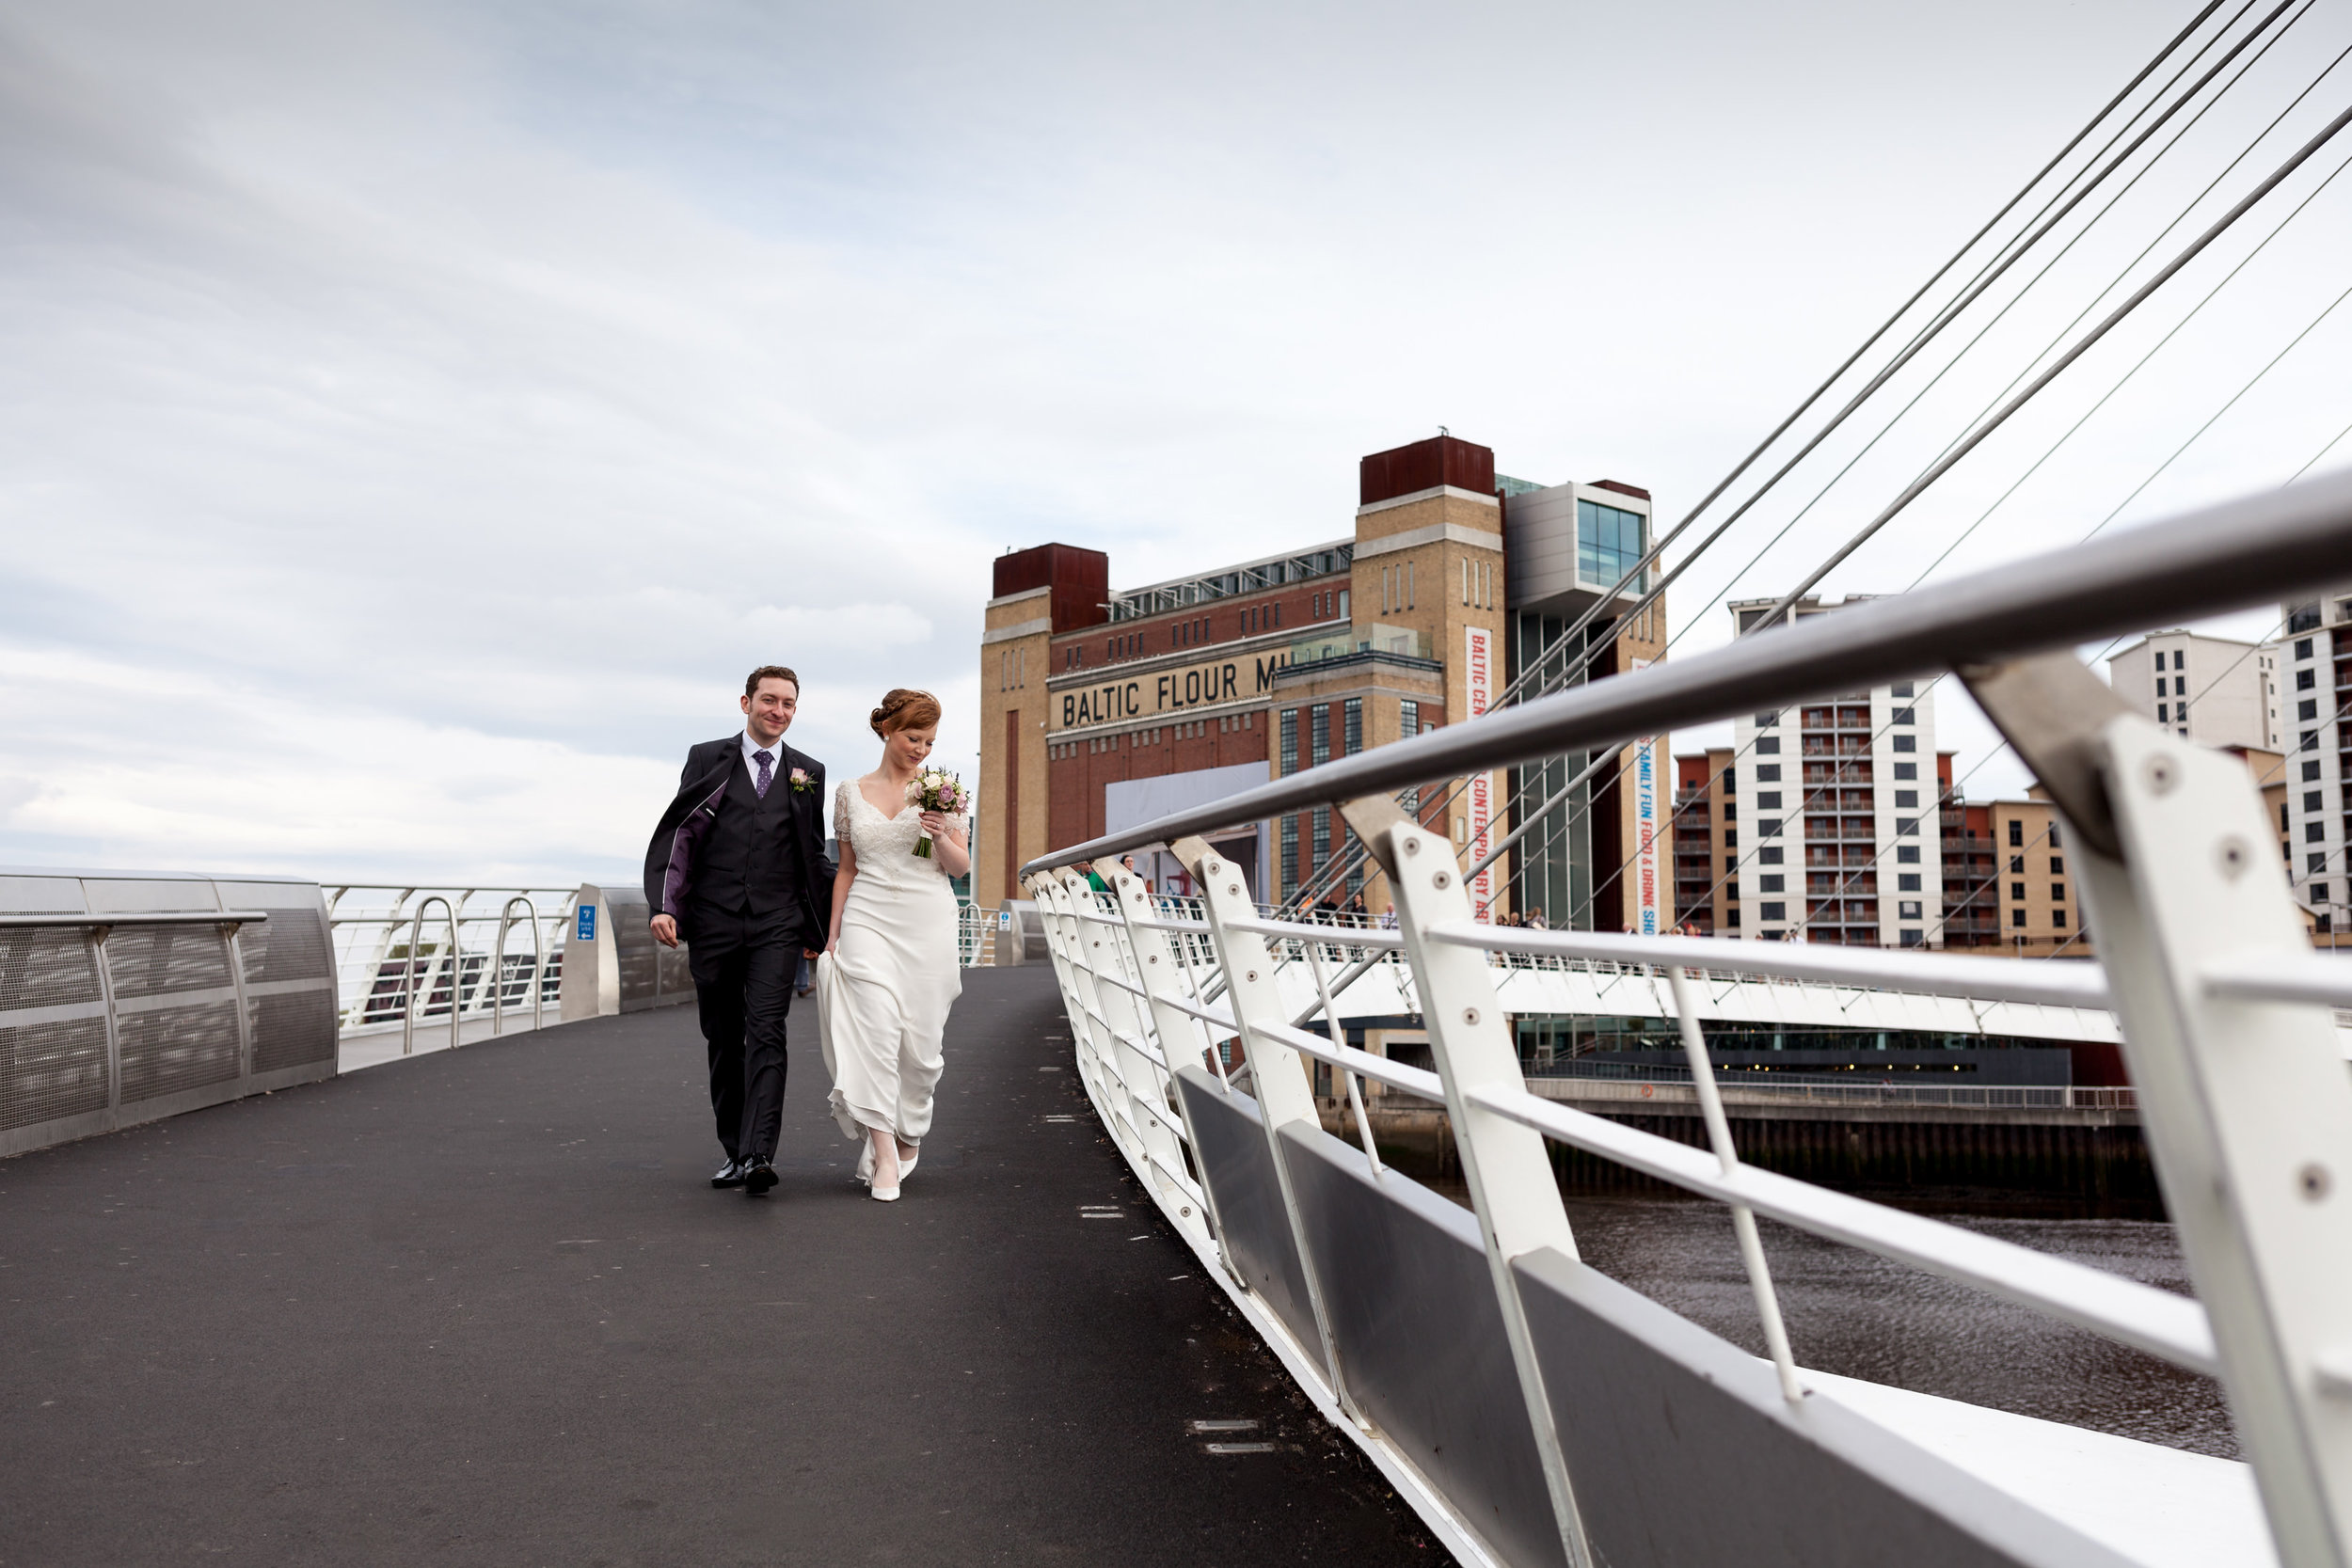 Katy-Rose and Chris walk over the Millennium Bridge on Newcastle Quayside with the Baltic wedding venue in background